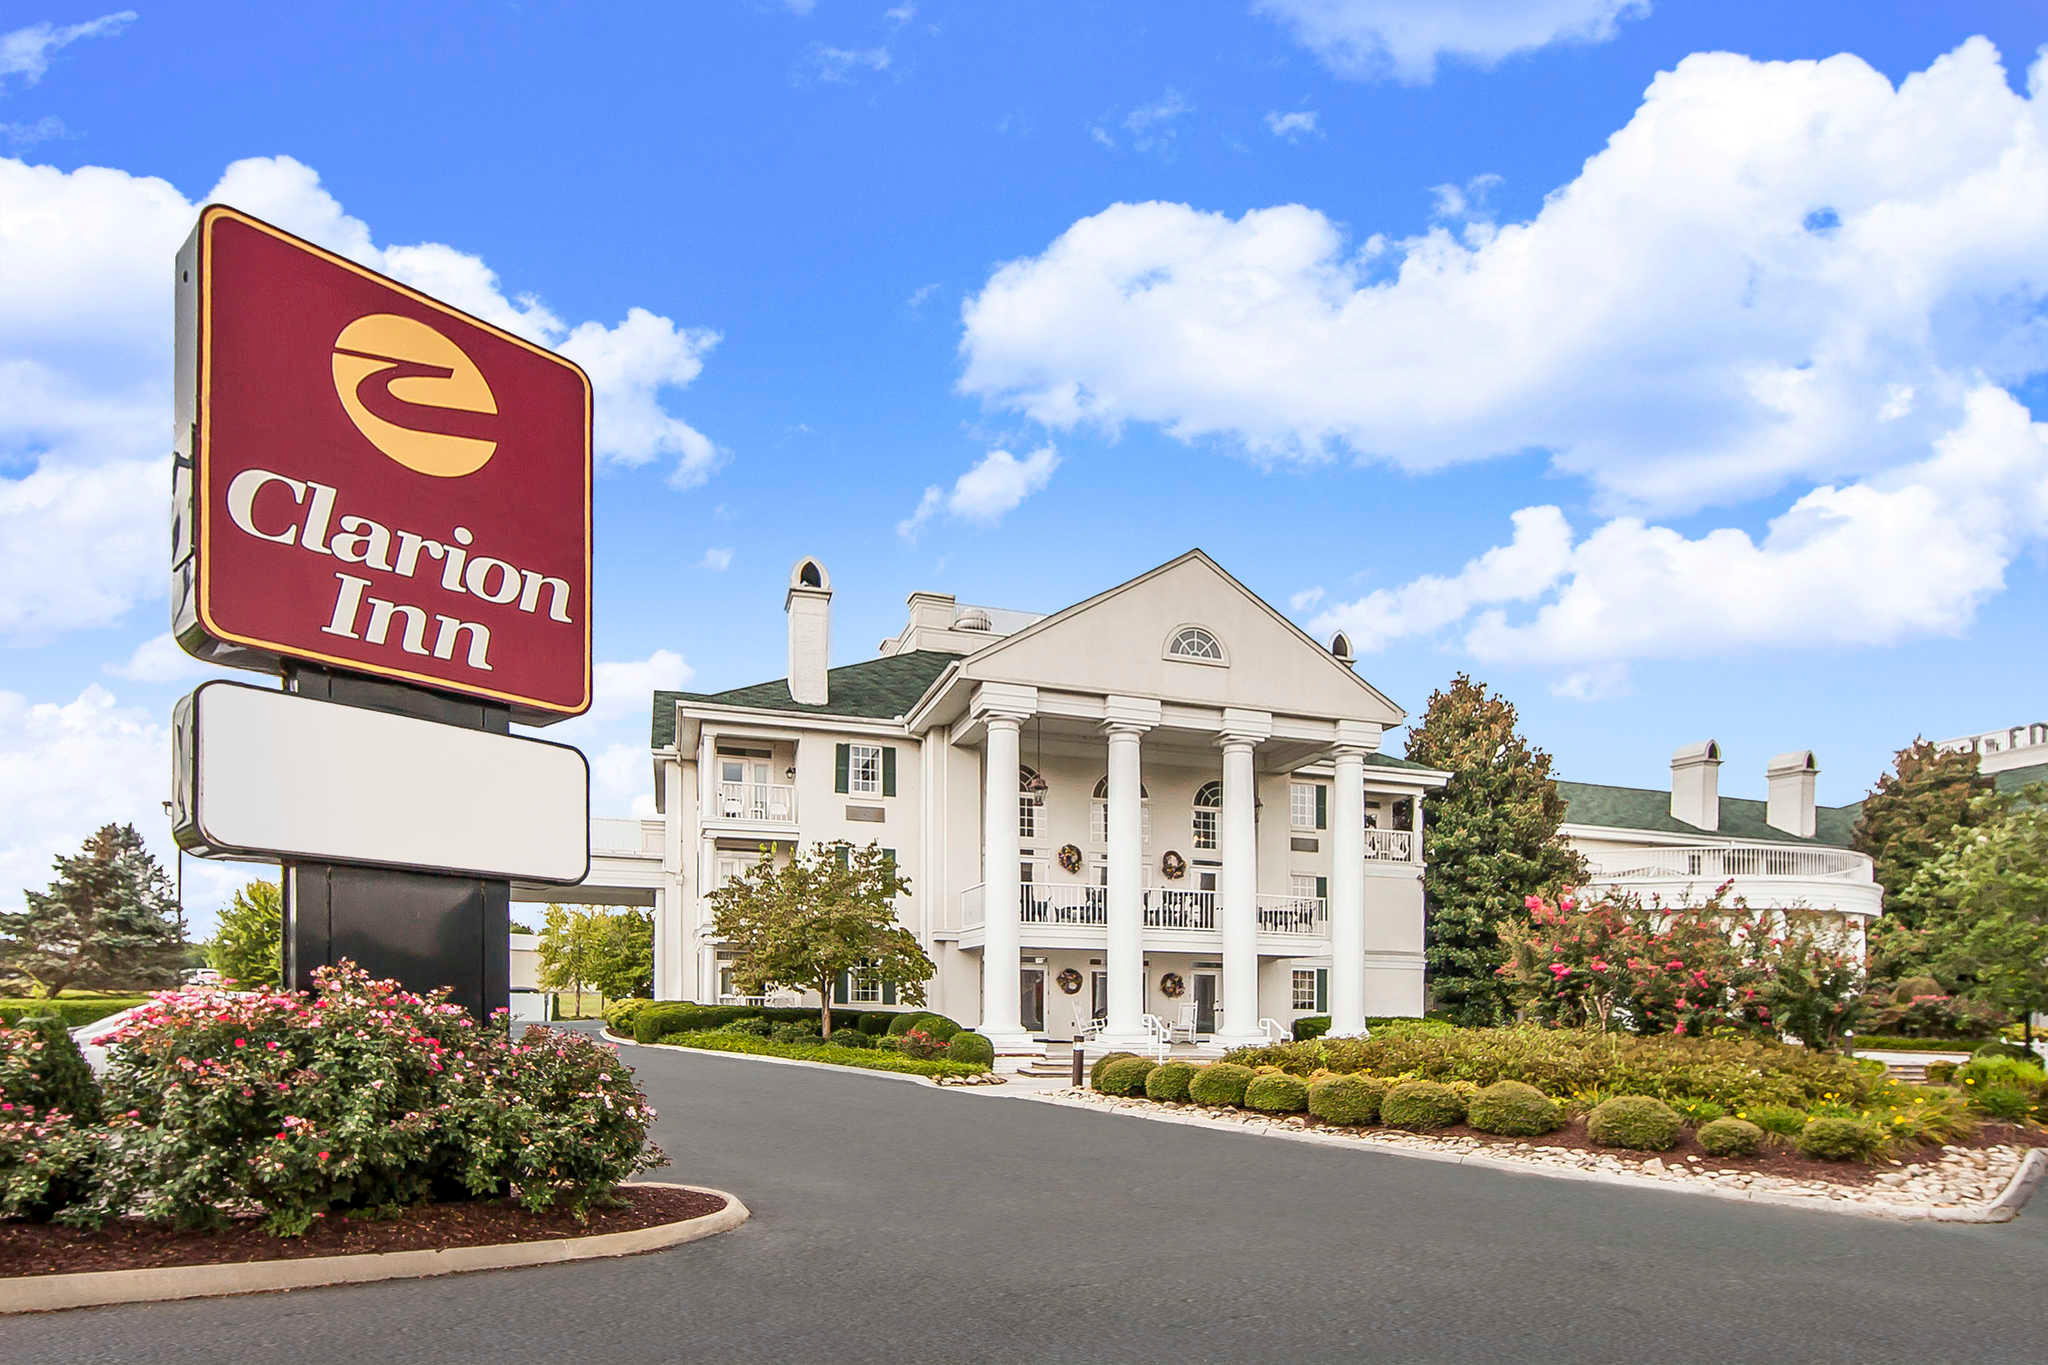 Clarion Inn Willow River - Sevierville, TN 37876 - (865)429-7600 | ShowMeLocal.com